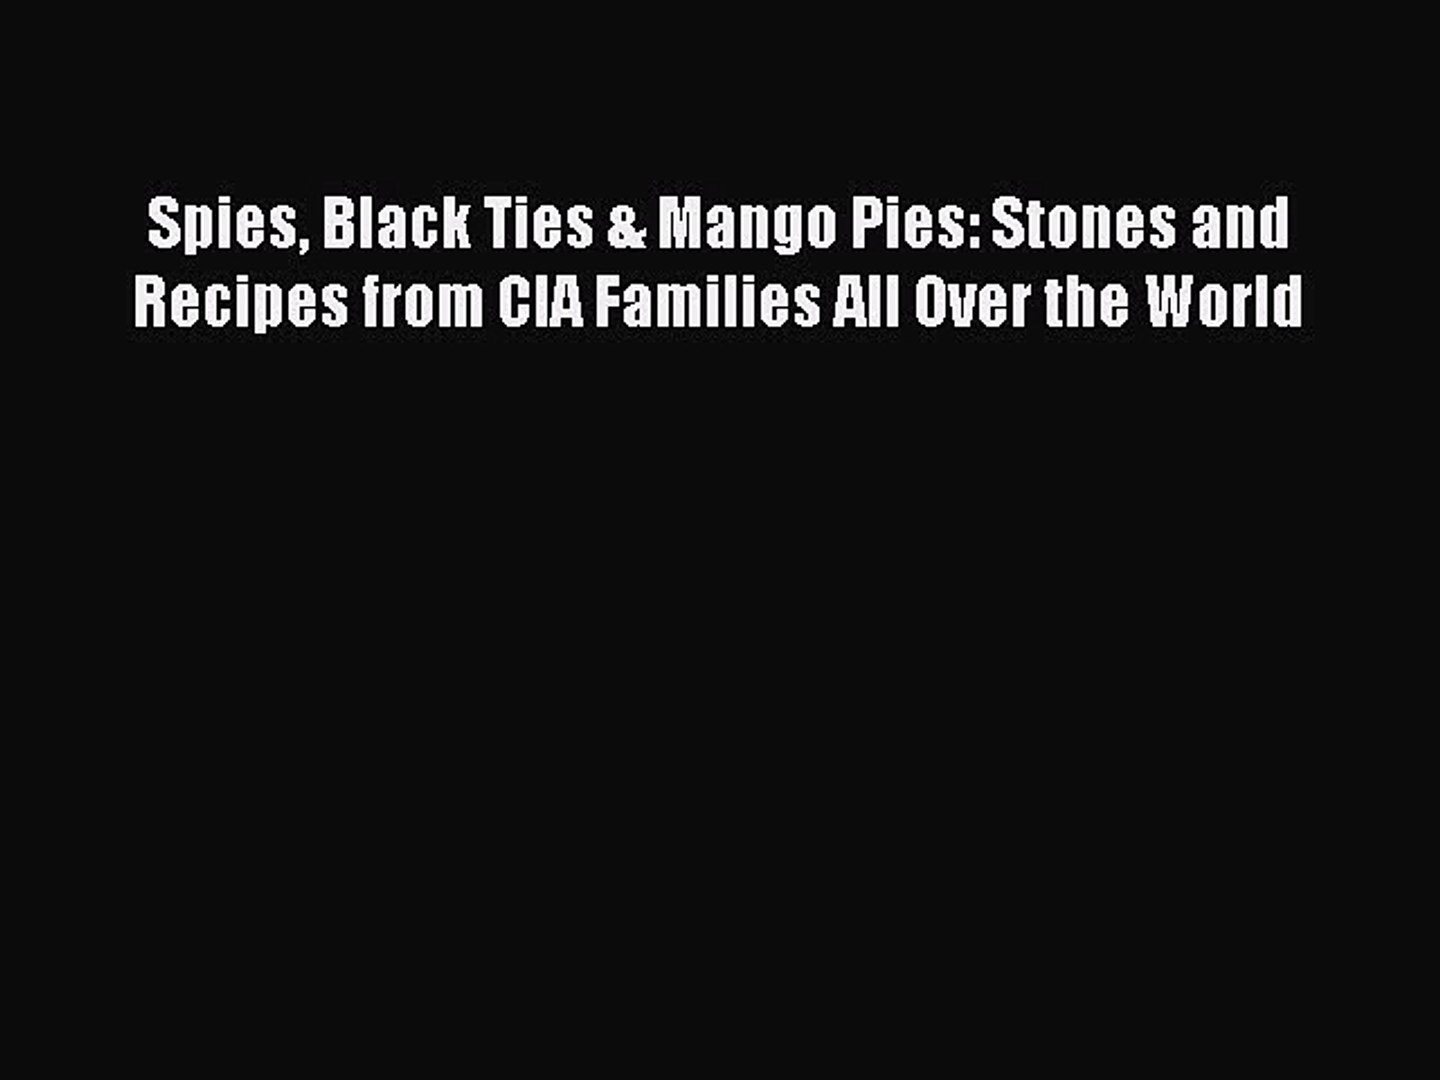 Read Spies Black Ties & Mango Pies: Stones and Recipes from CIA Families All Over the World